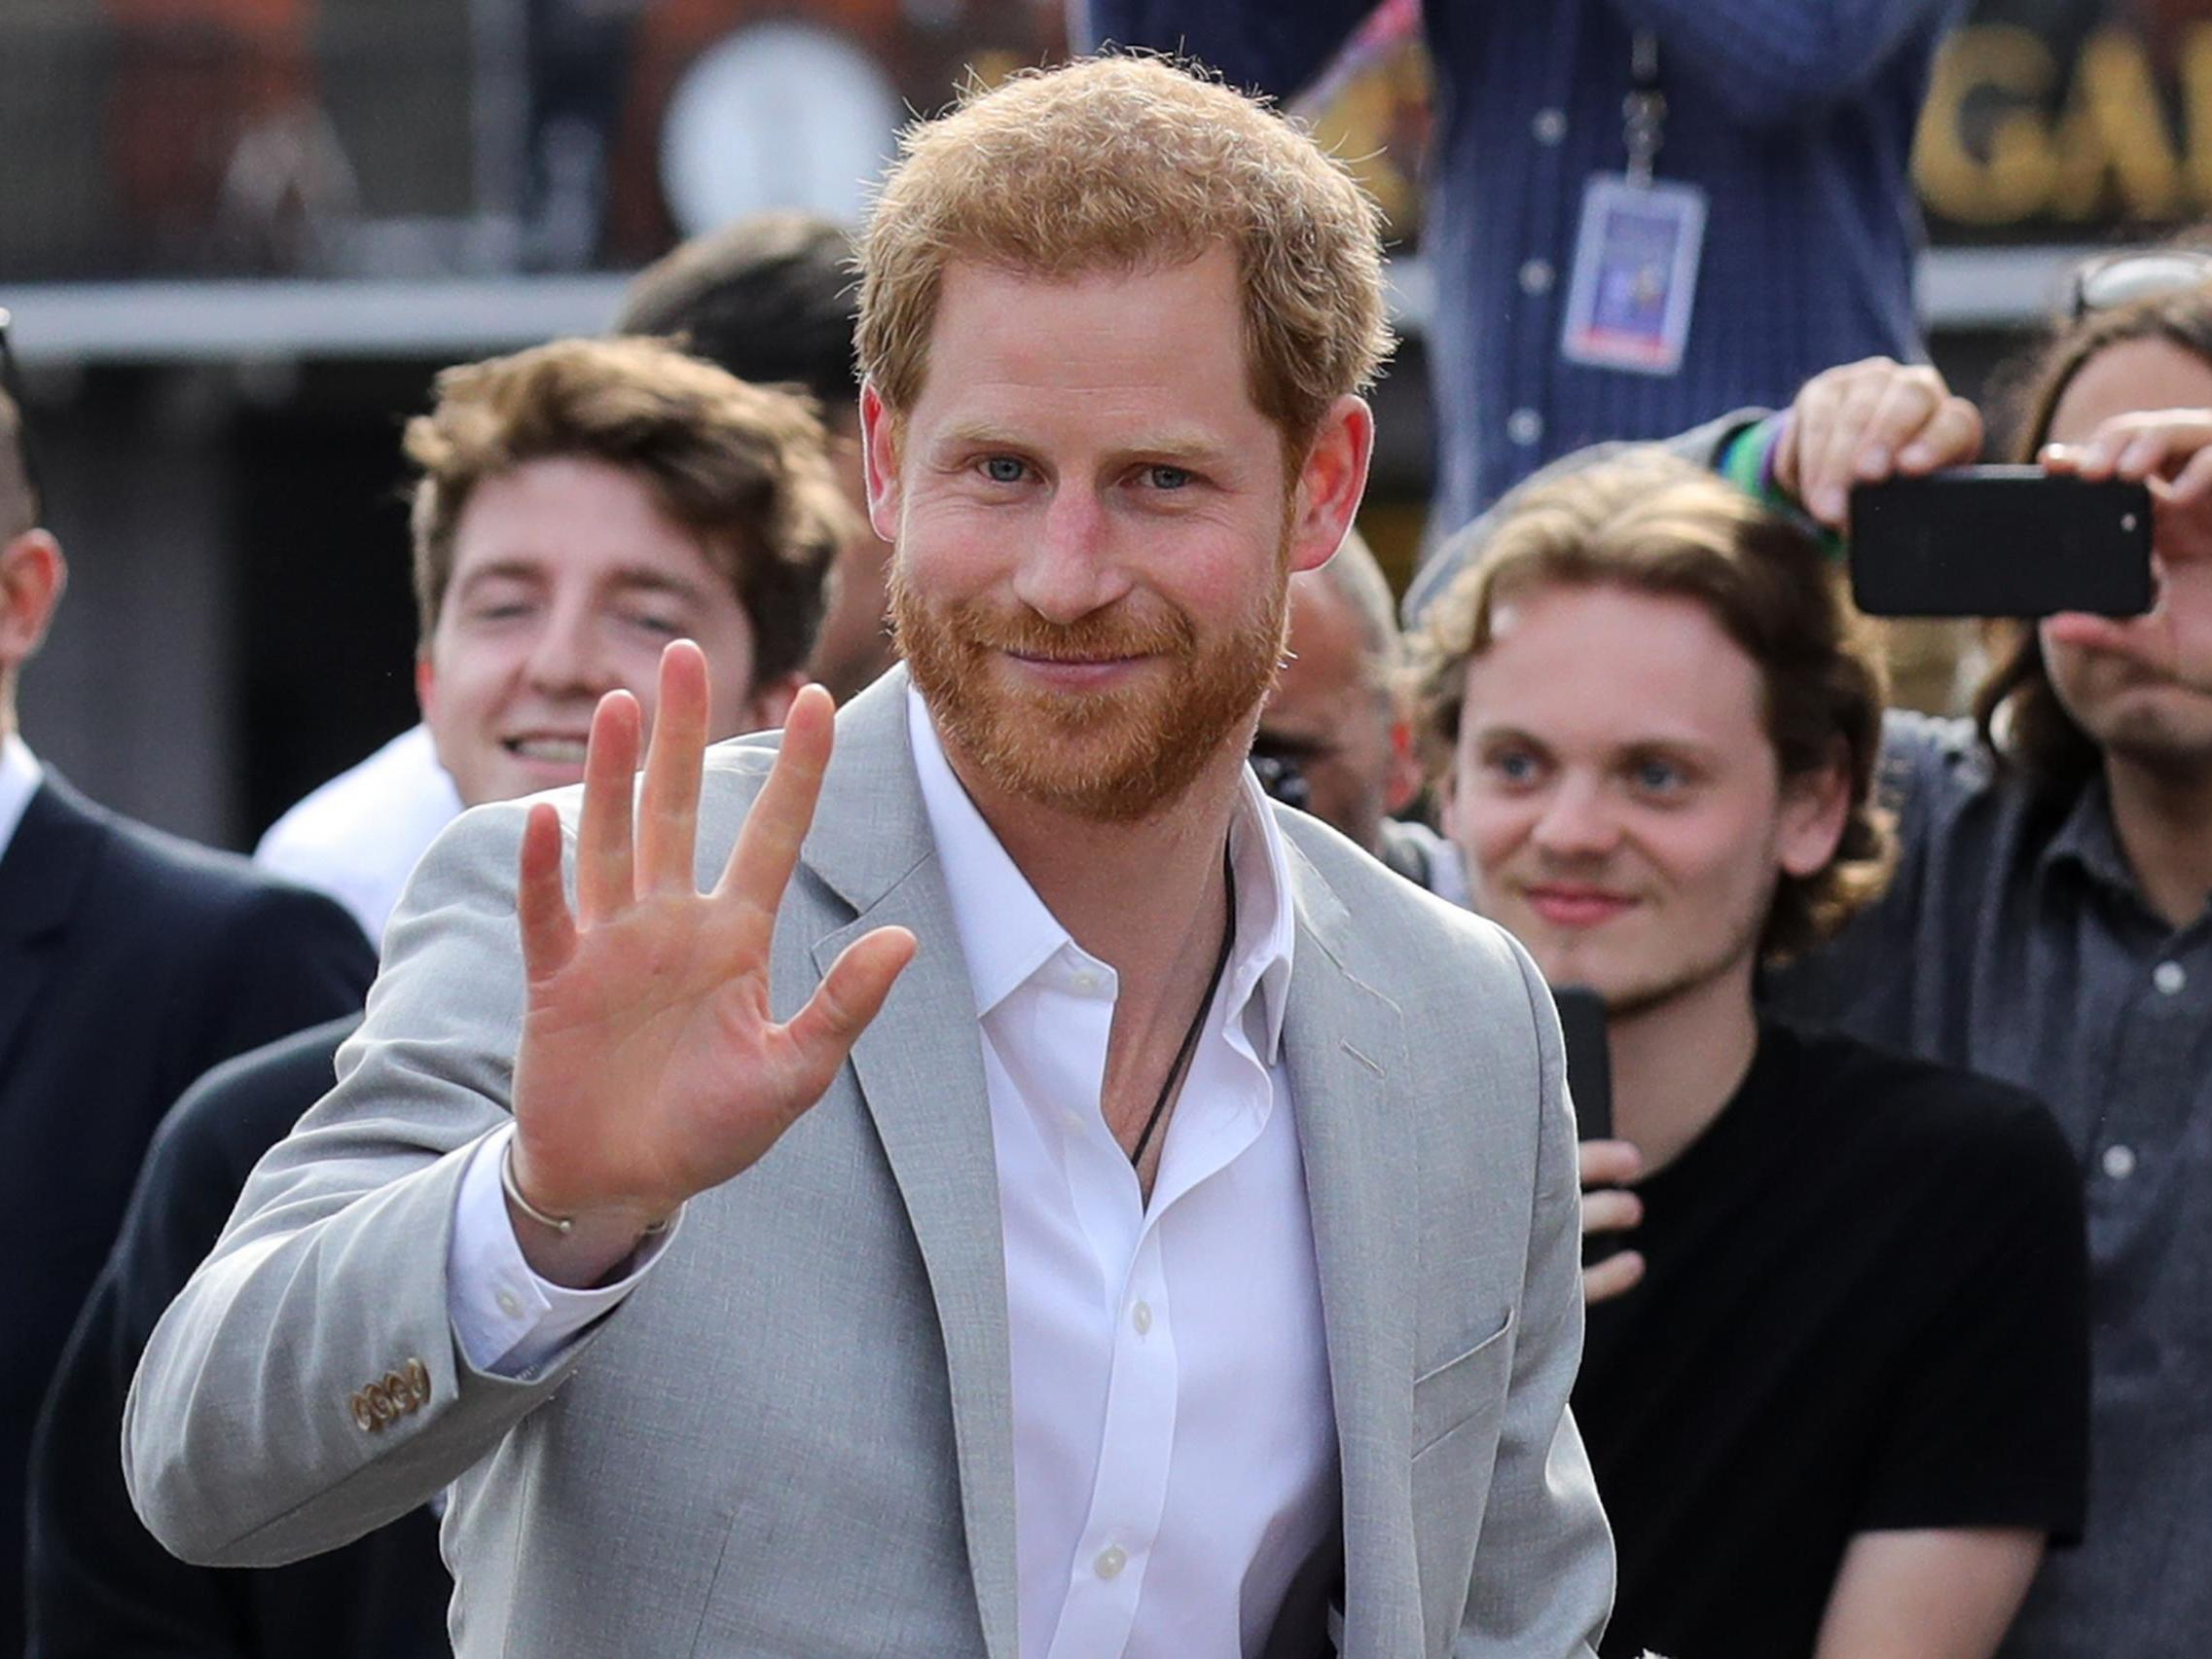 Prince Harry opens up about mental health as he carries out first engagement since royal announcement